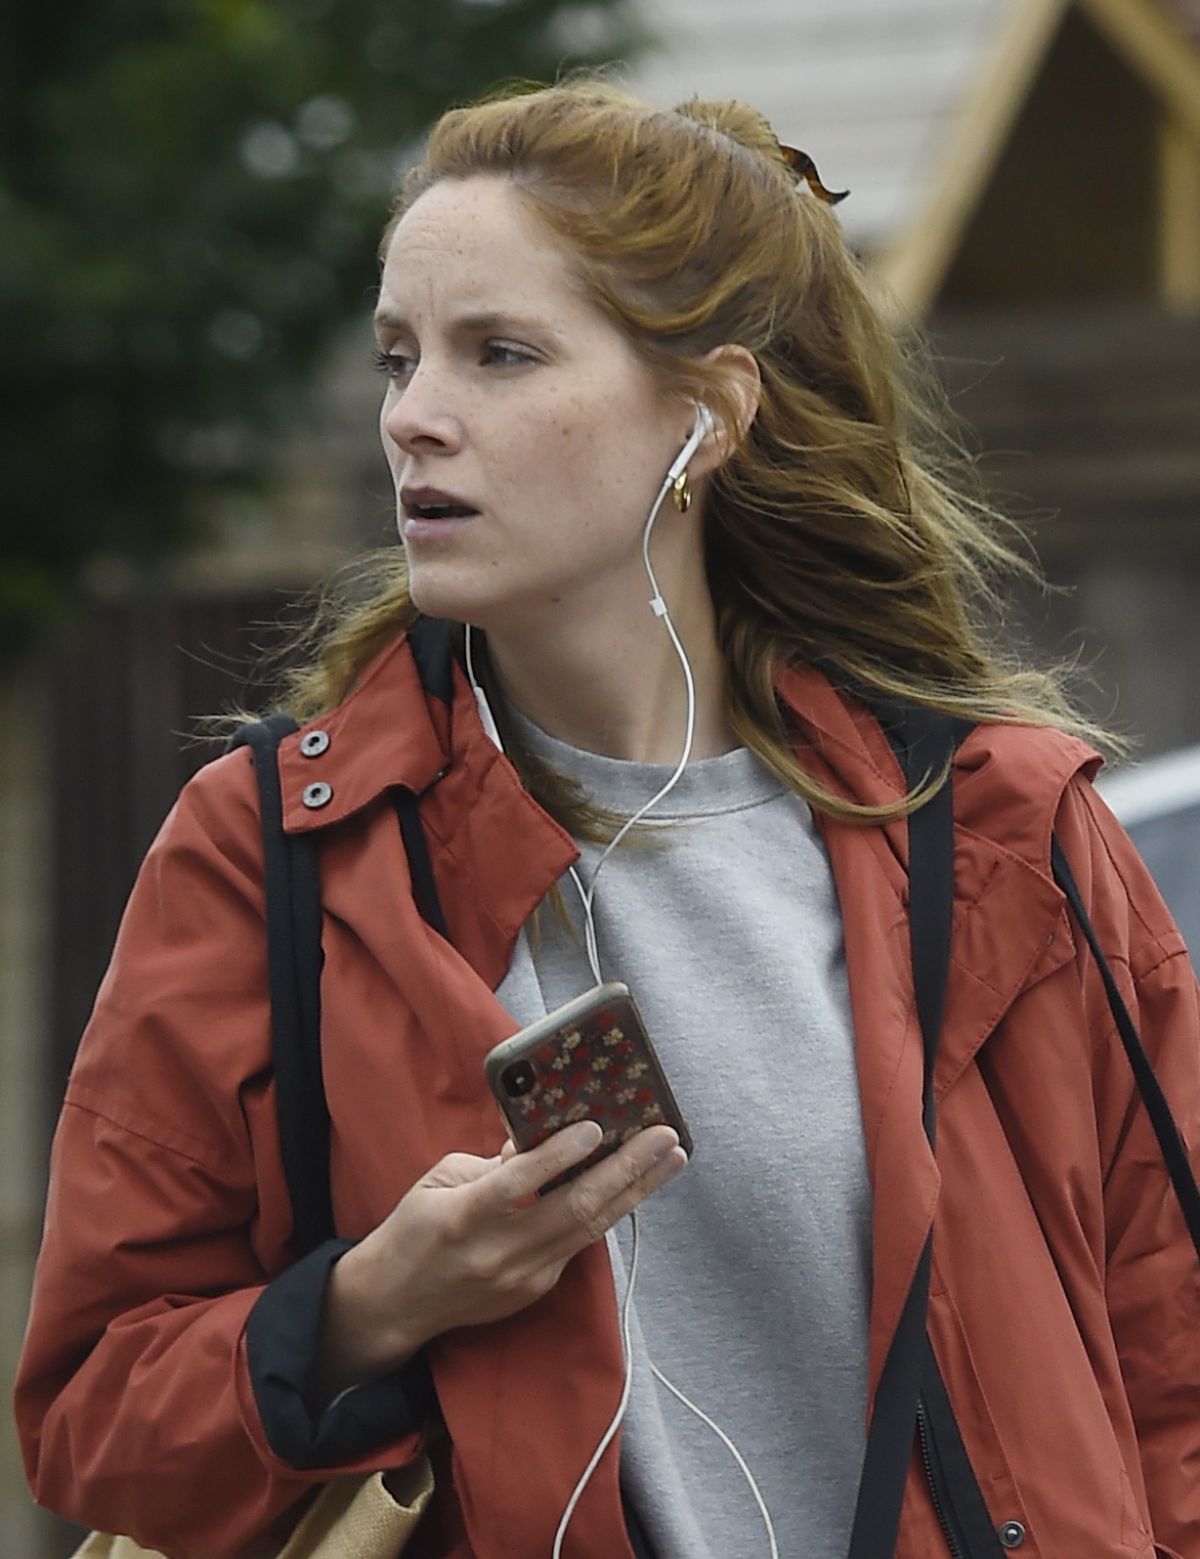 Sophie Rundle Out and about shopping in London - Celebzz - Celebzz